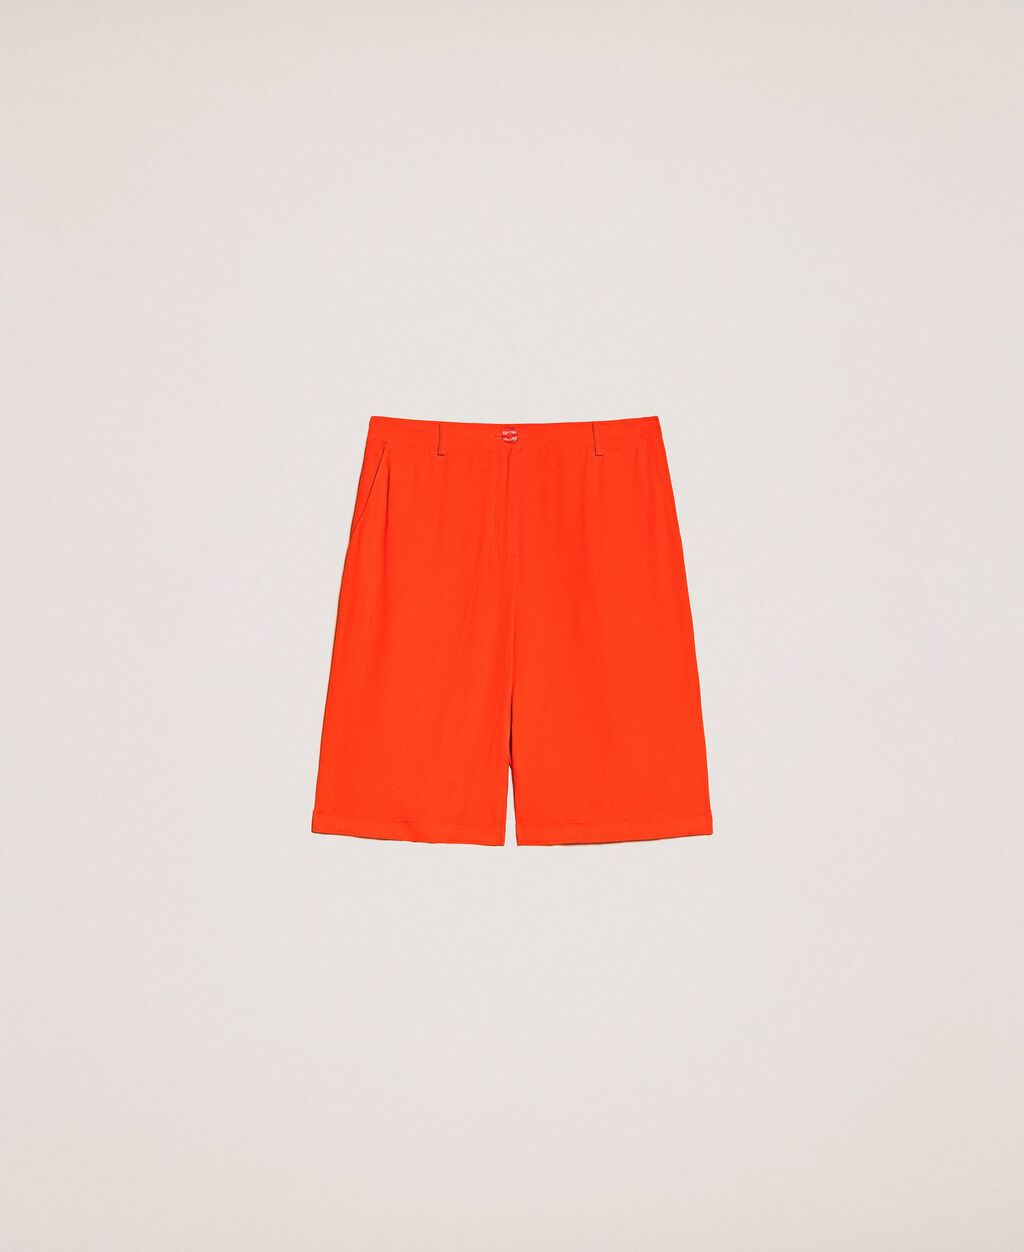 Georgette Bermuda shorts